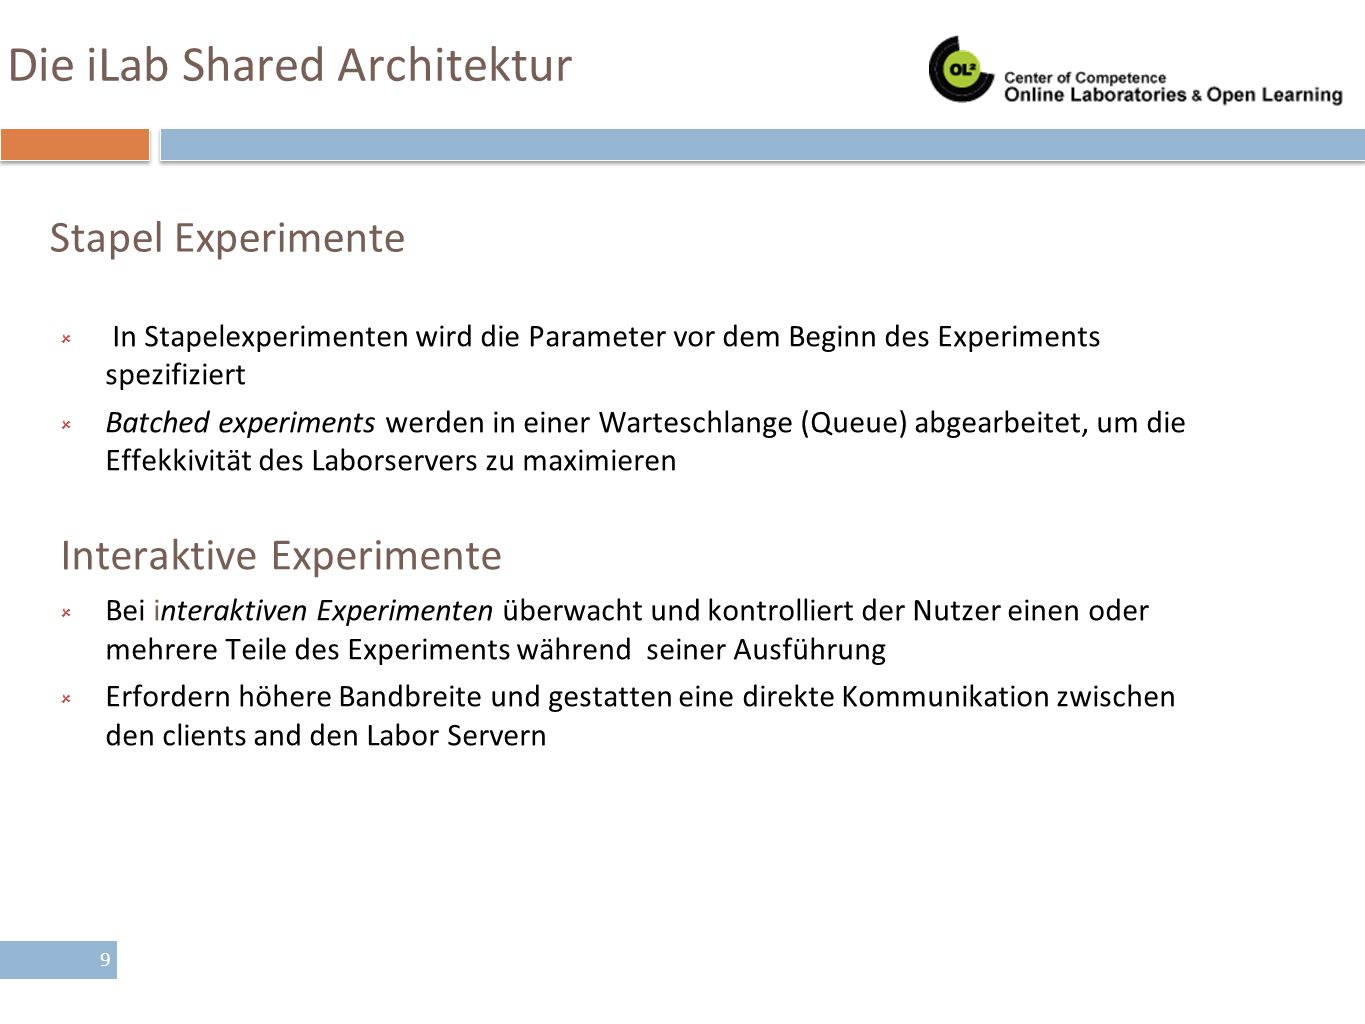 Die iLab Shared Architektur